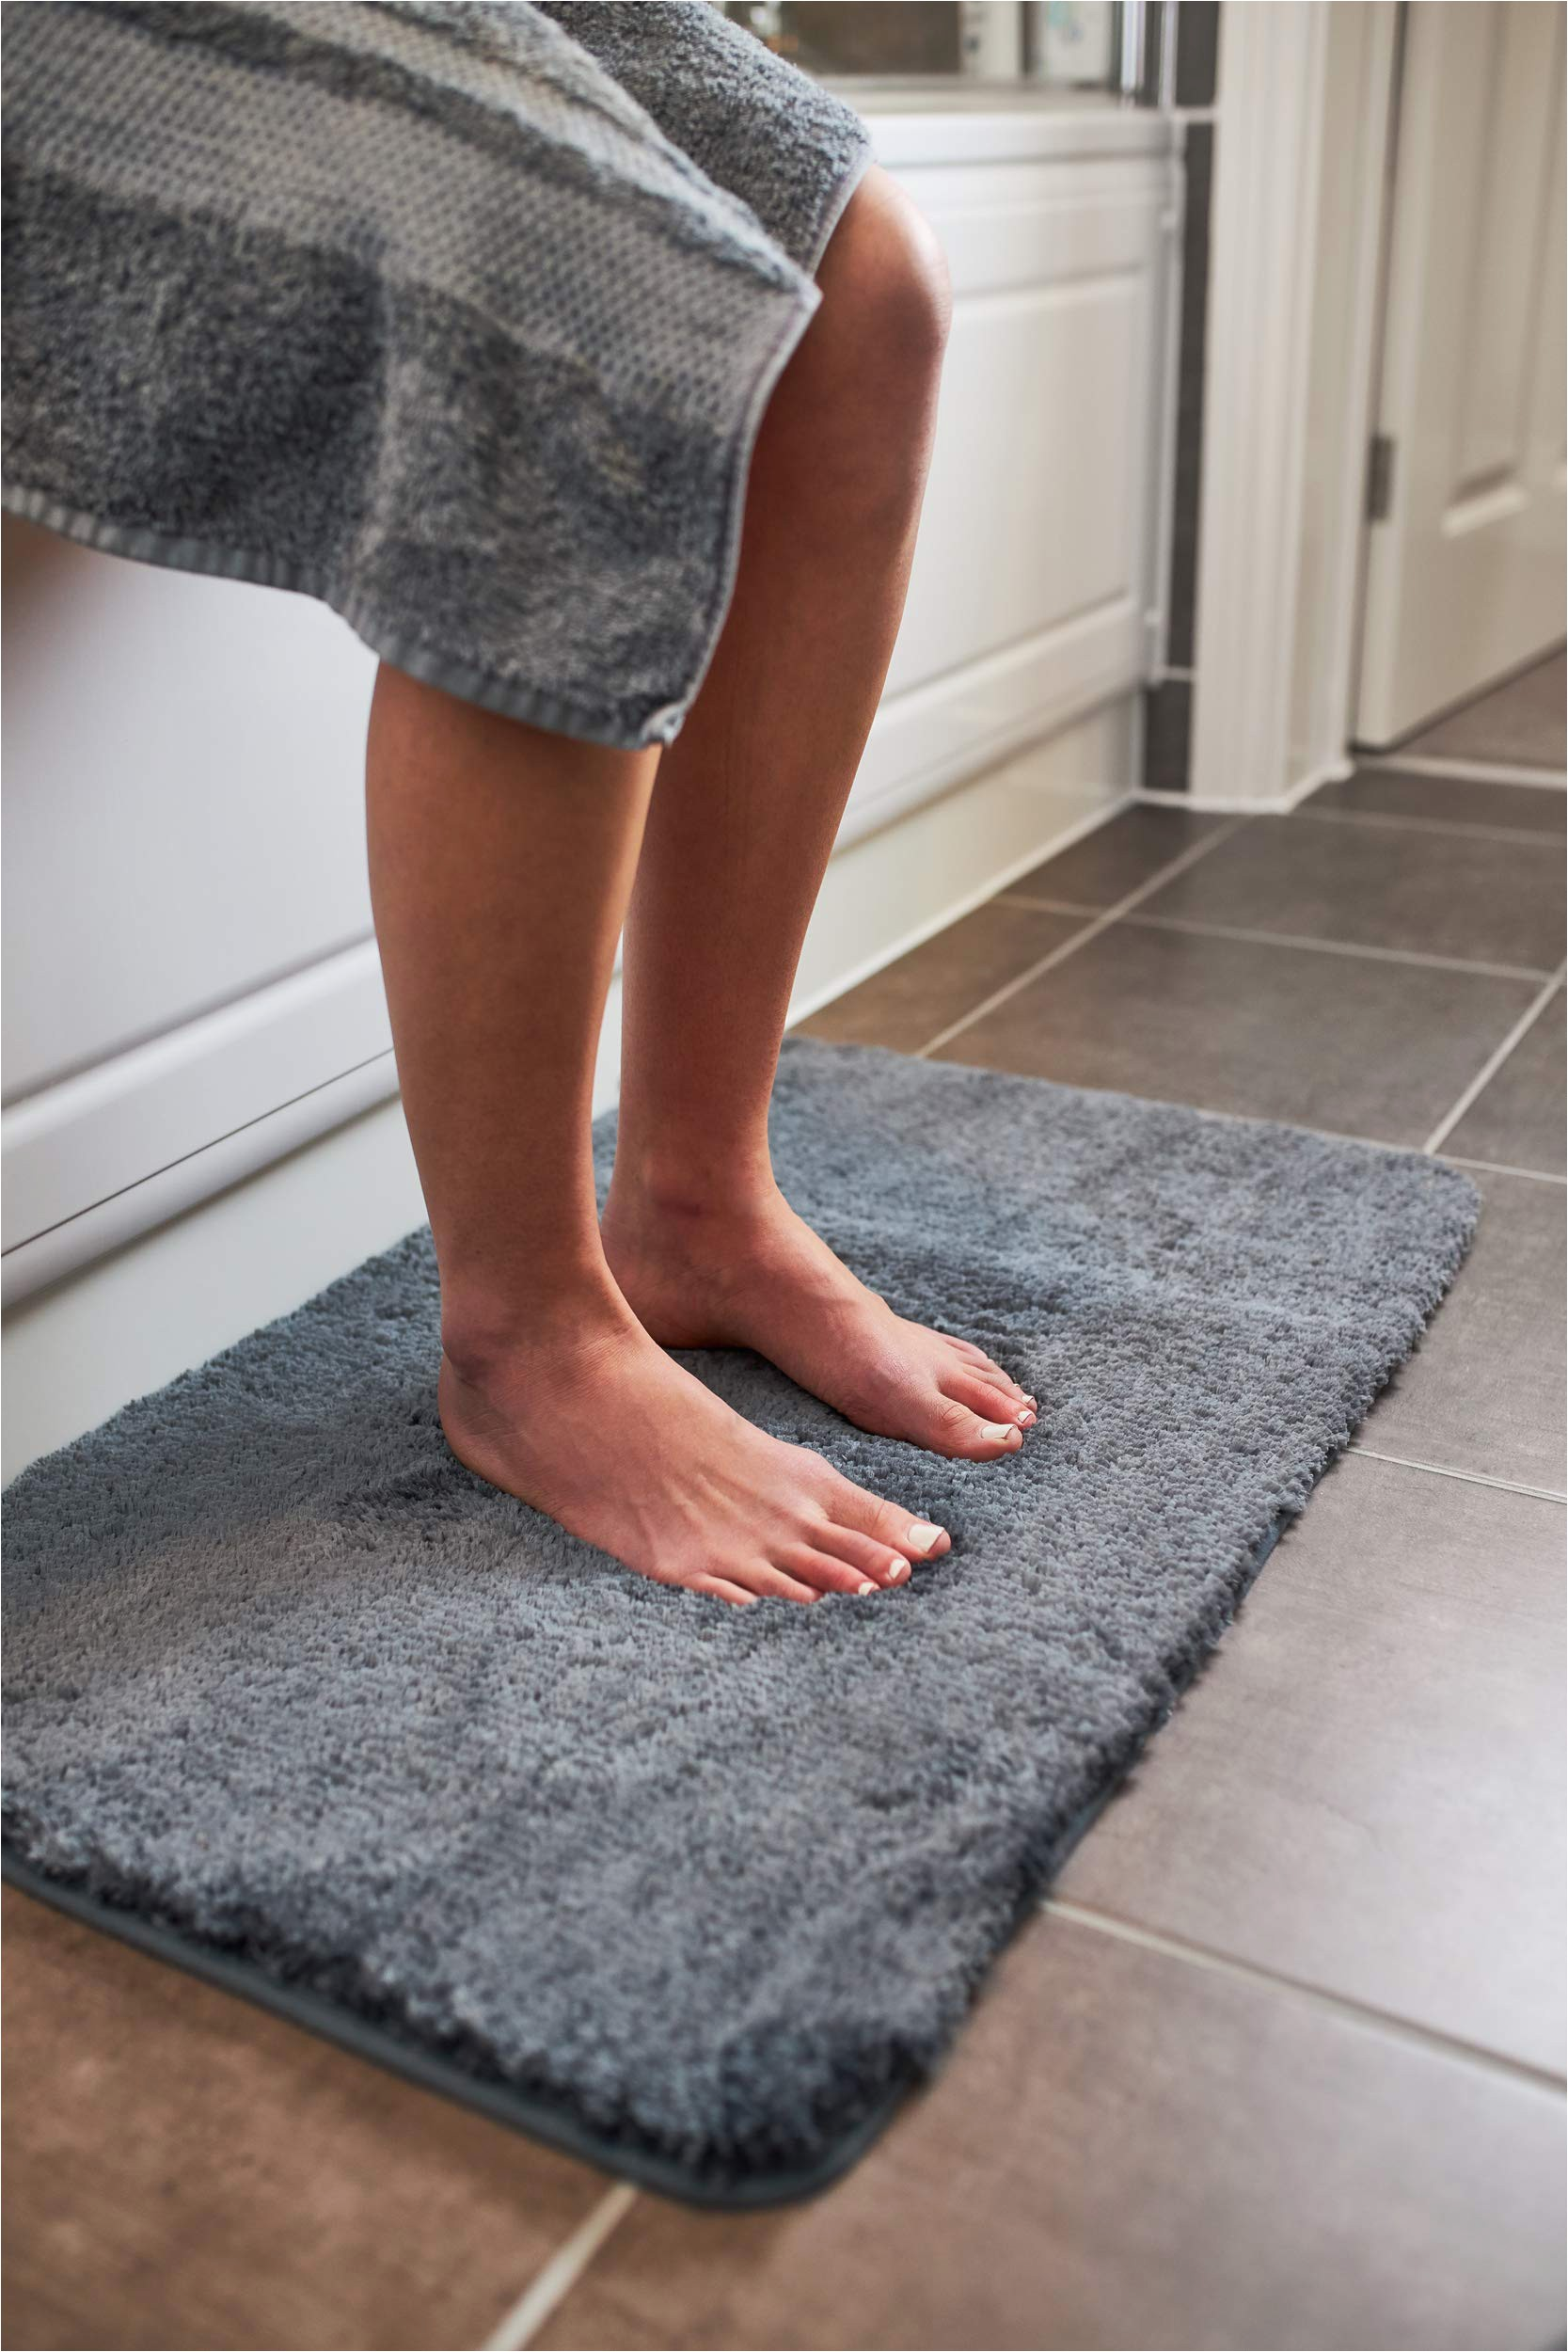 Premium Bath Microfiber Chenille Bath Rug Luxury Grey Bath Mat Microfiber Non Slip Bath Rug with Super soft Absorbent Dry Fast Design for Bath and Shower